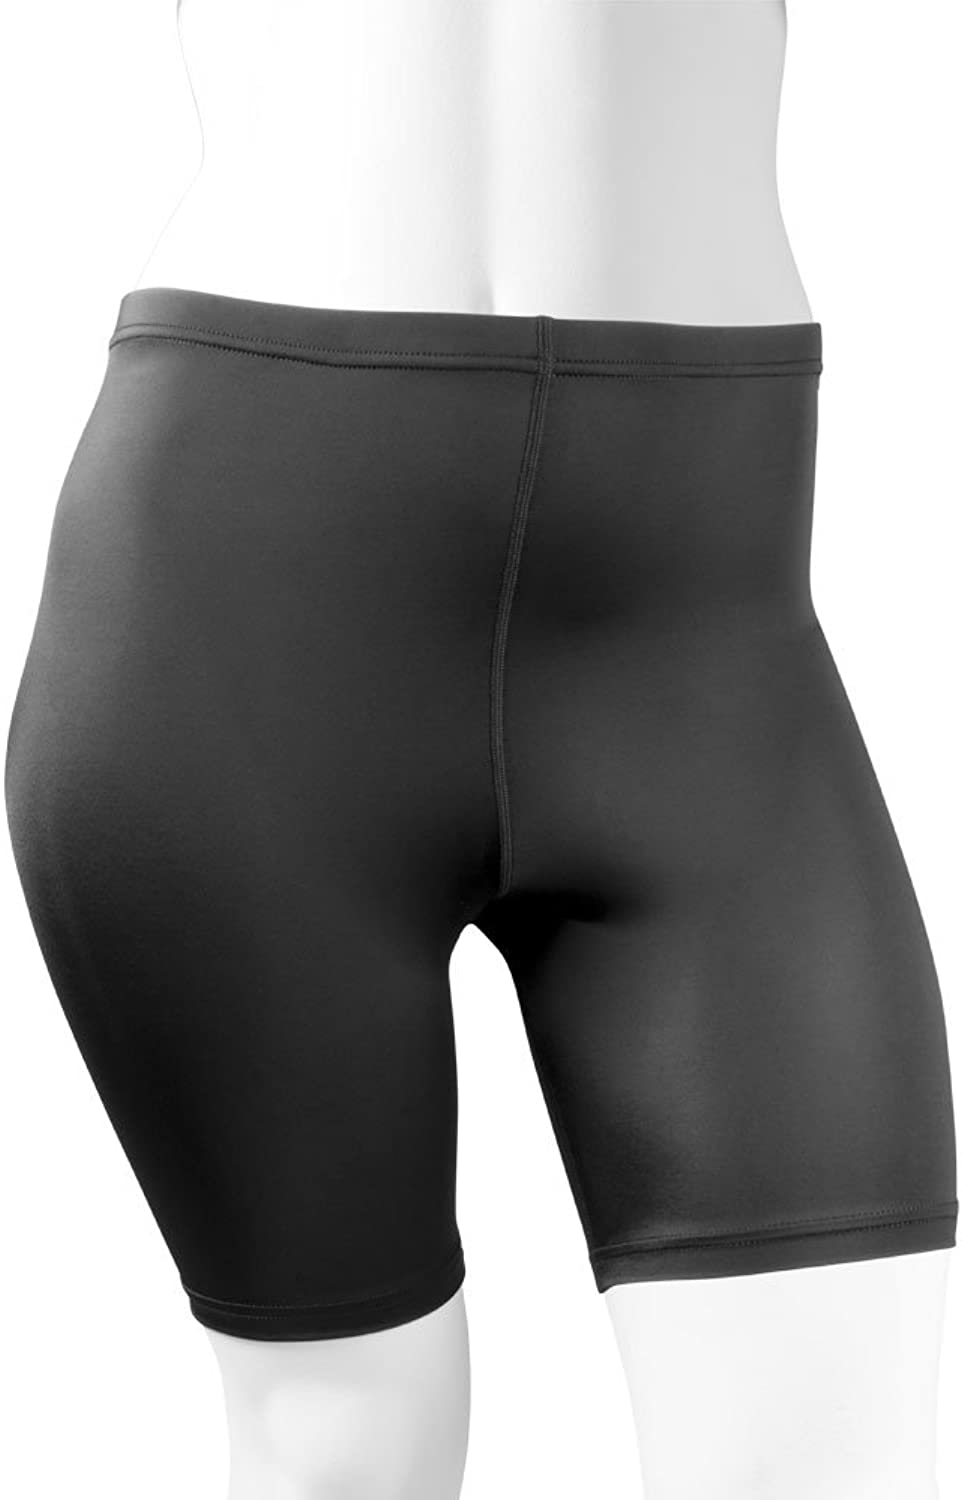 AERO TECH DESIGNS Plus Size Women's Spandex Exercise Short  Compression Workout ShortsMade in USA